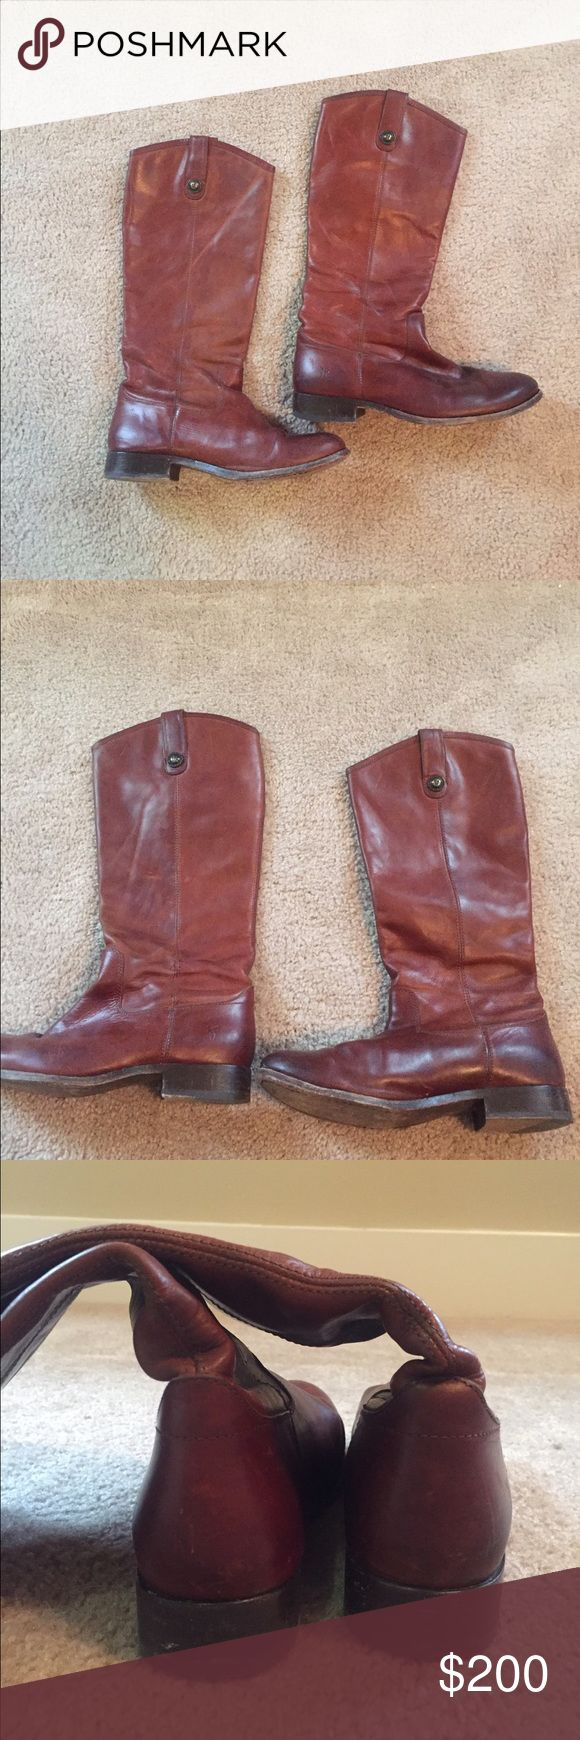 Frye Melissa Button Boots frye melissa button boots size 8.5 only worn a few times and they are in very good condition. ask me questions or send me offers!:) Frye Shoes